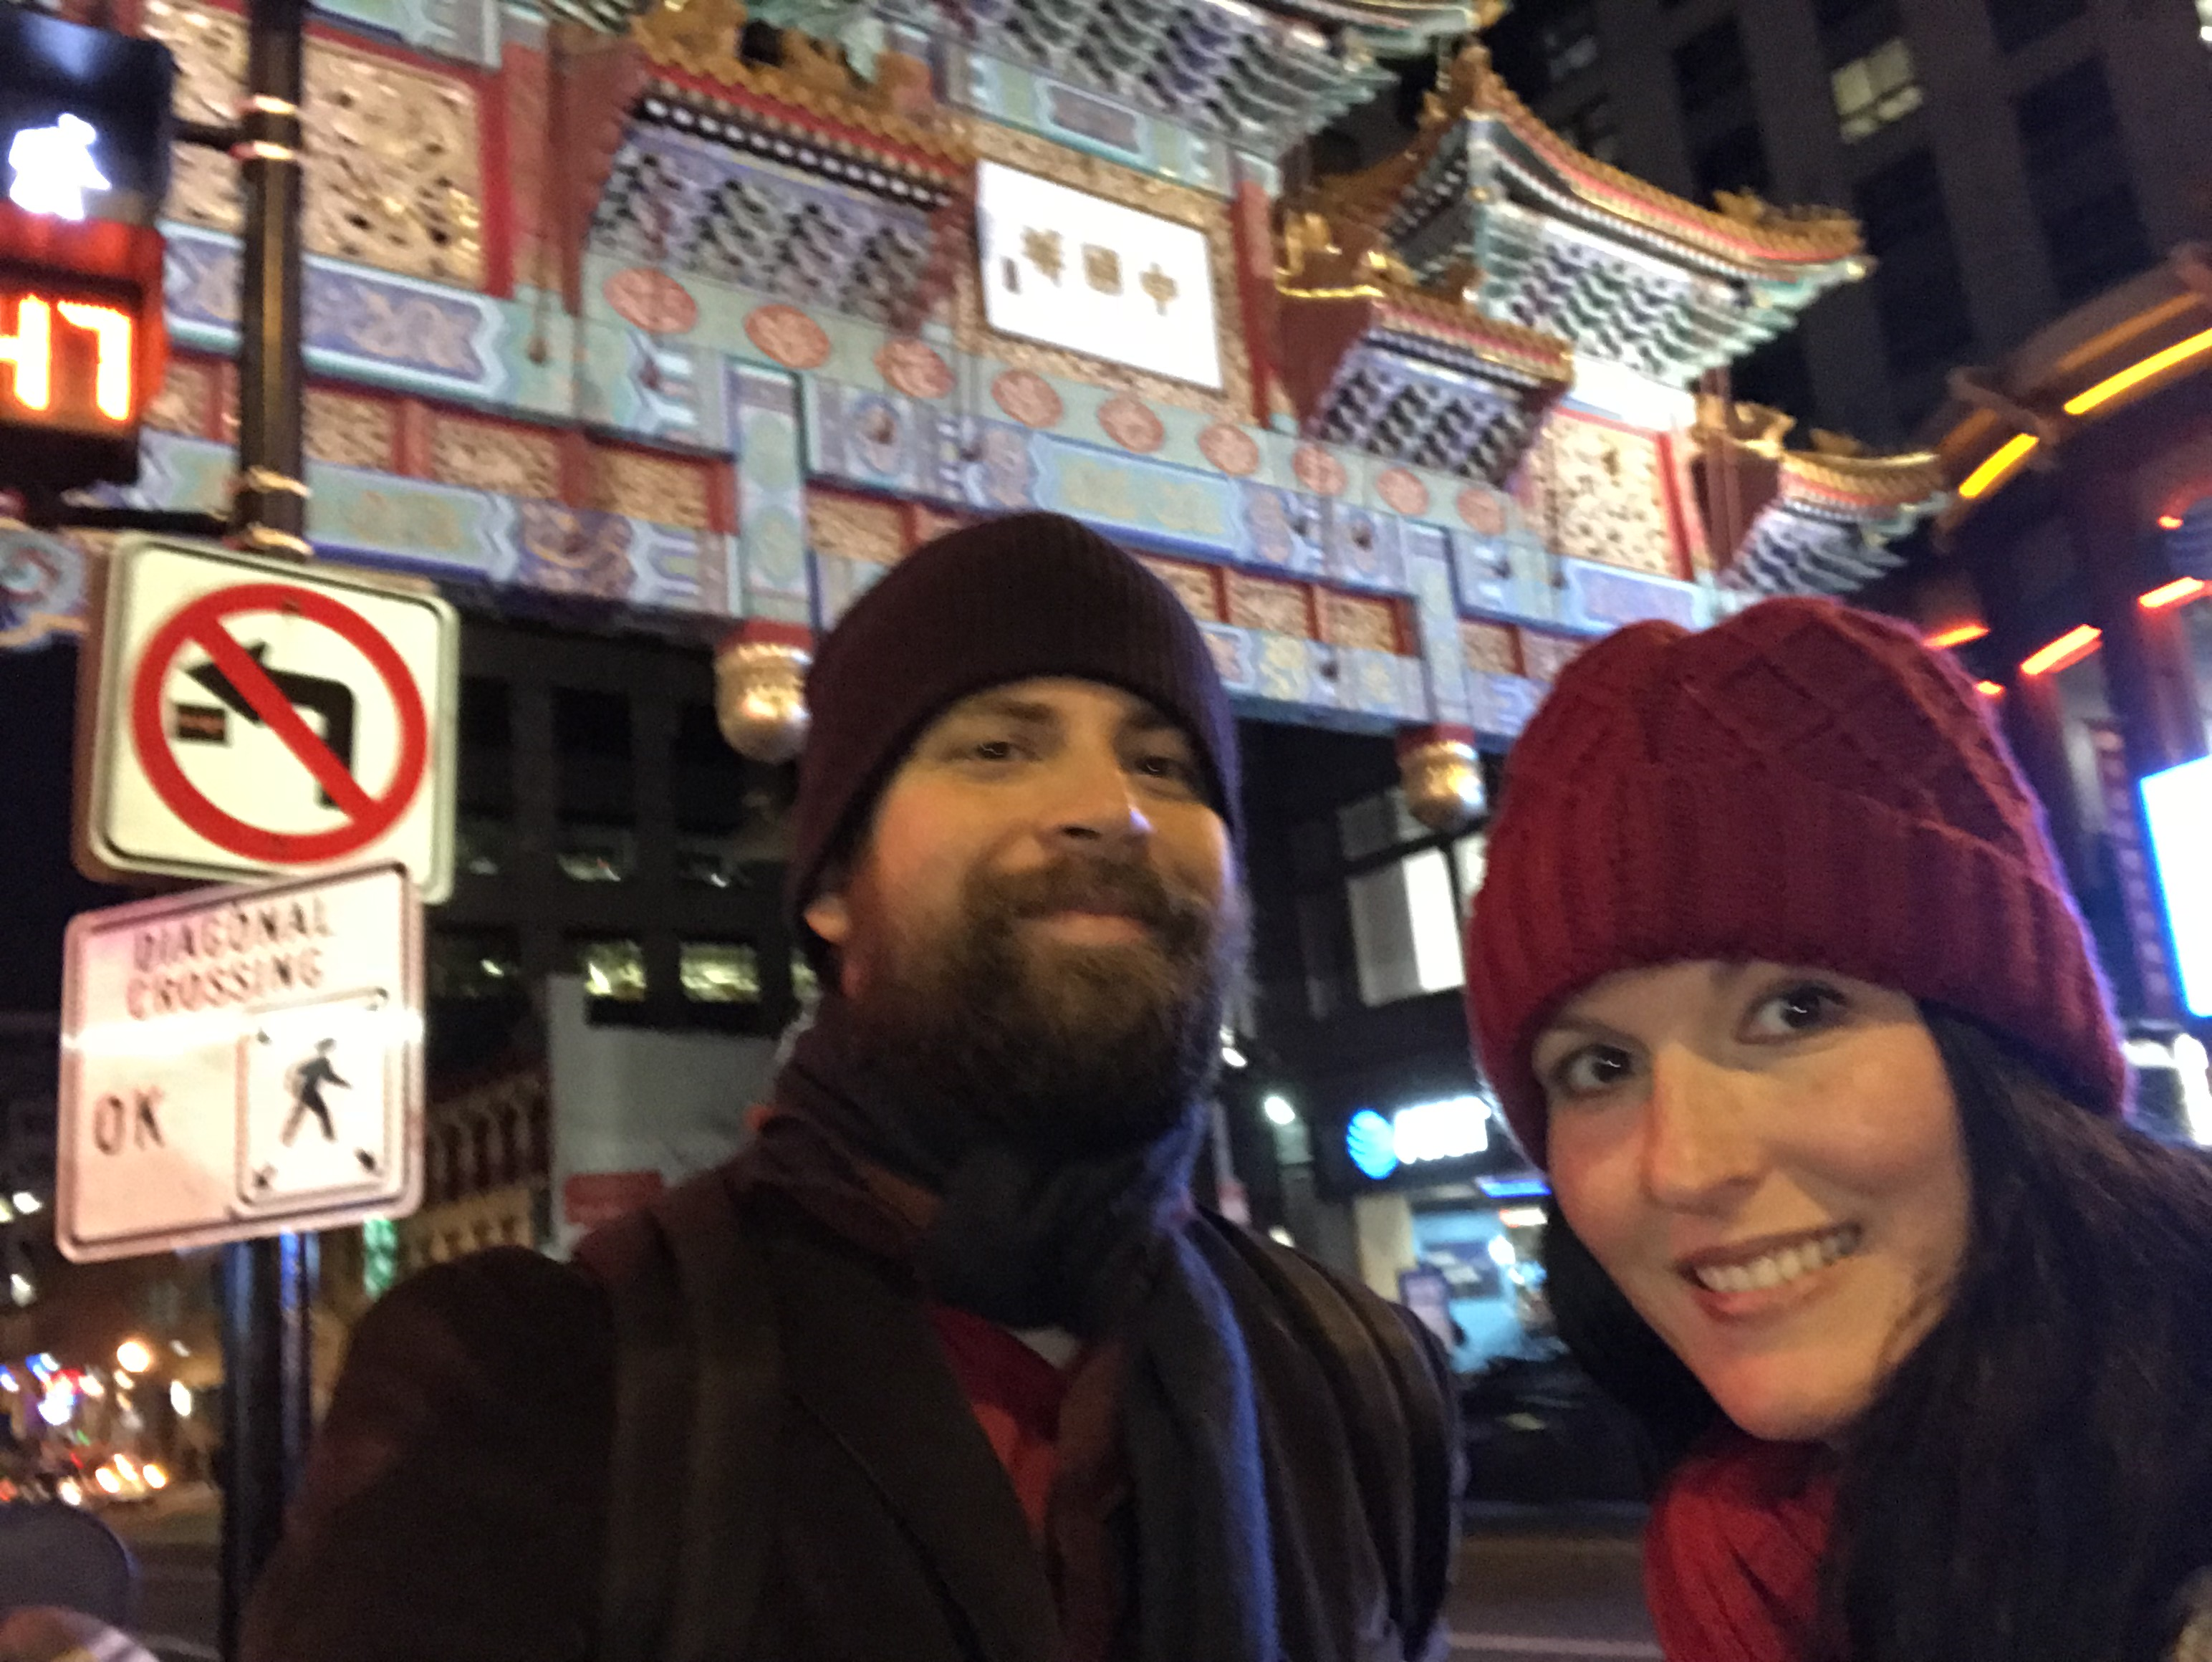 DESTINY'S DOORS: COLORADO, DATE NIGHT, AND CHRISTMAS DAY